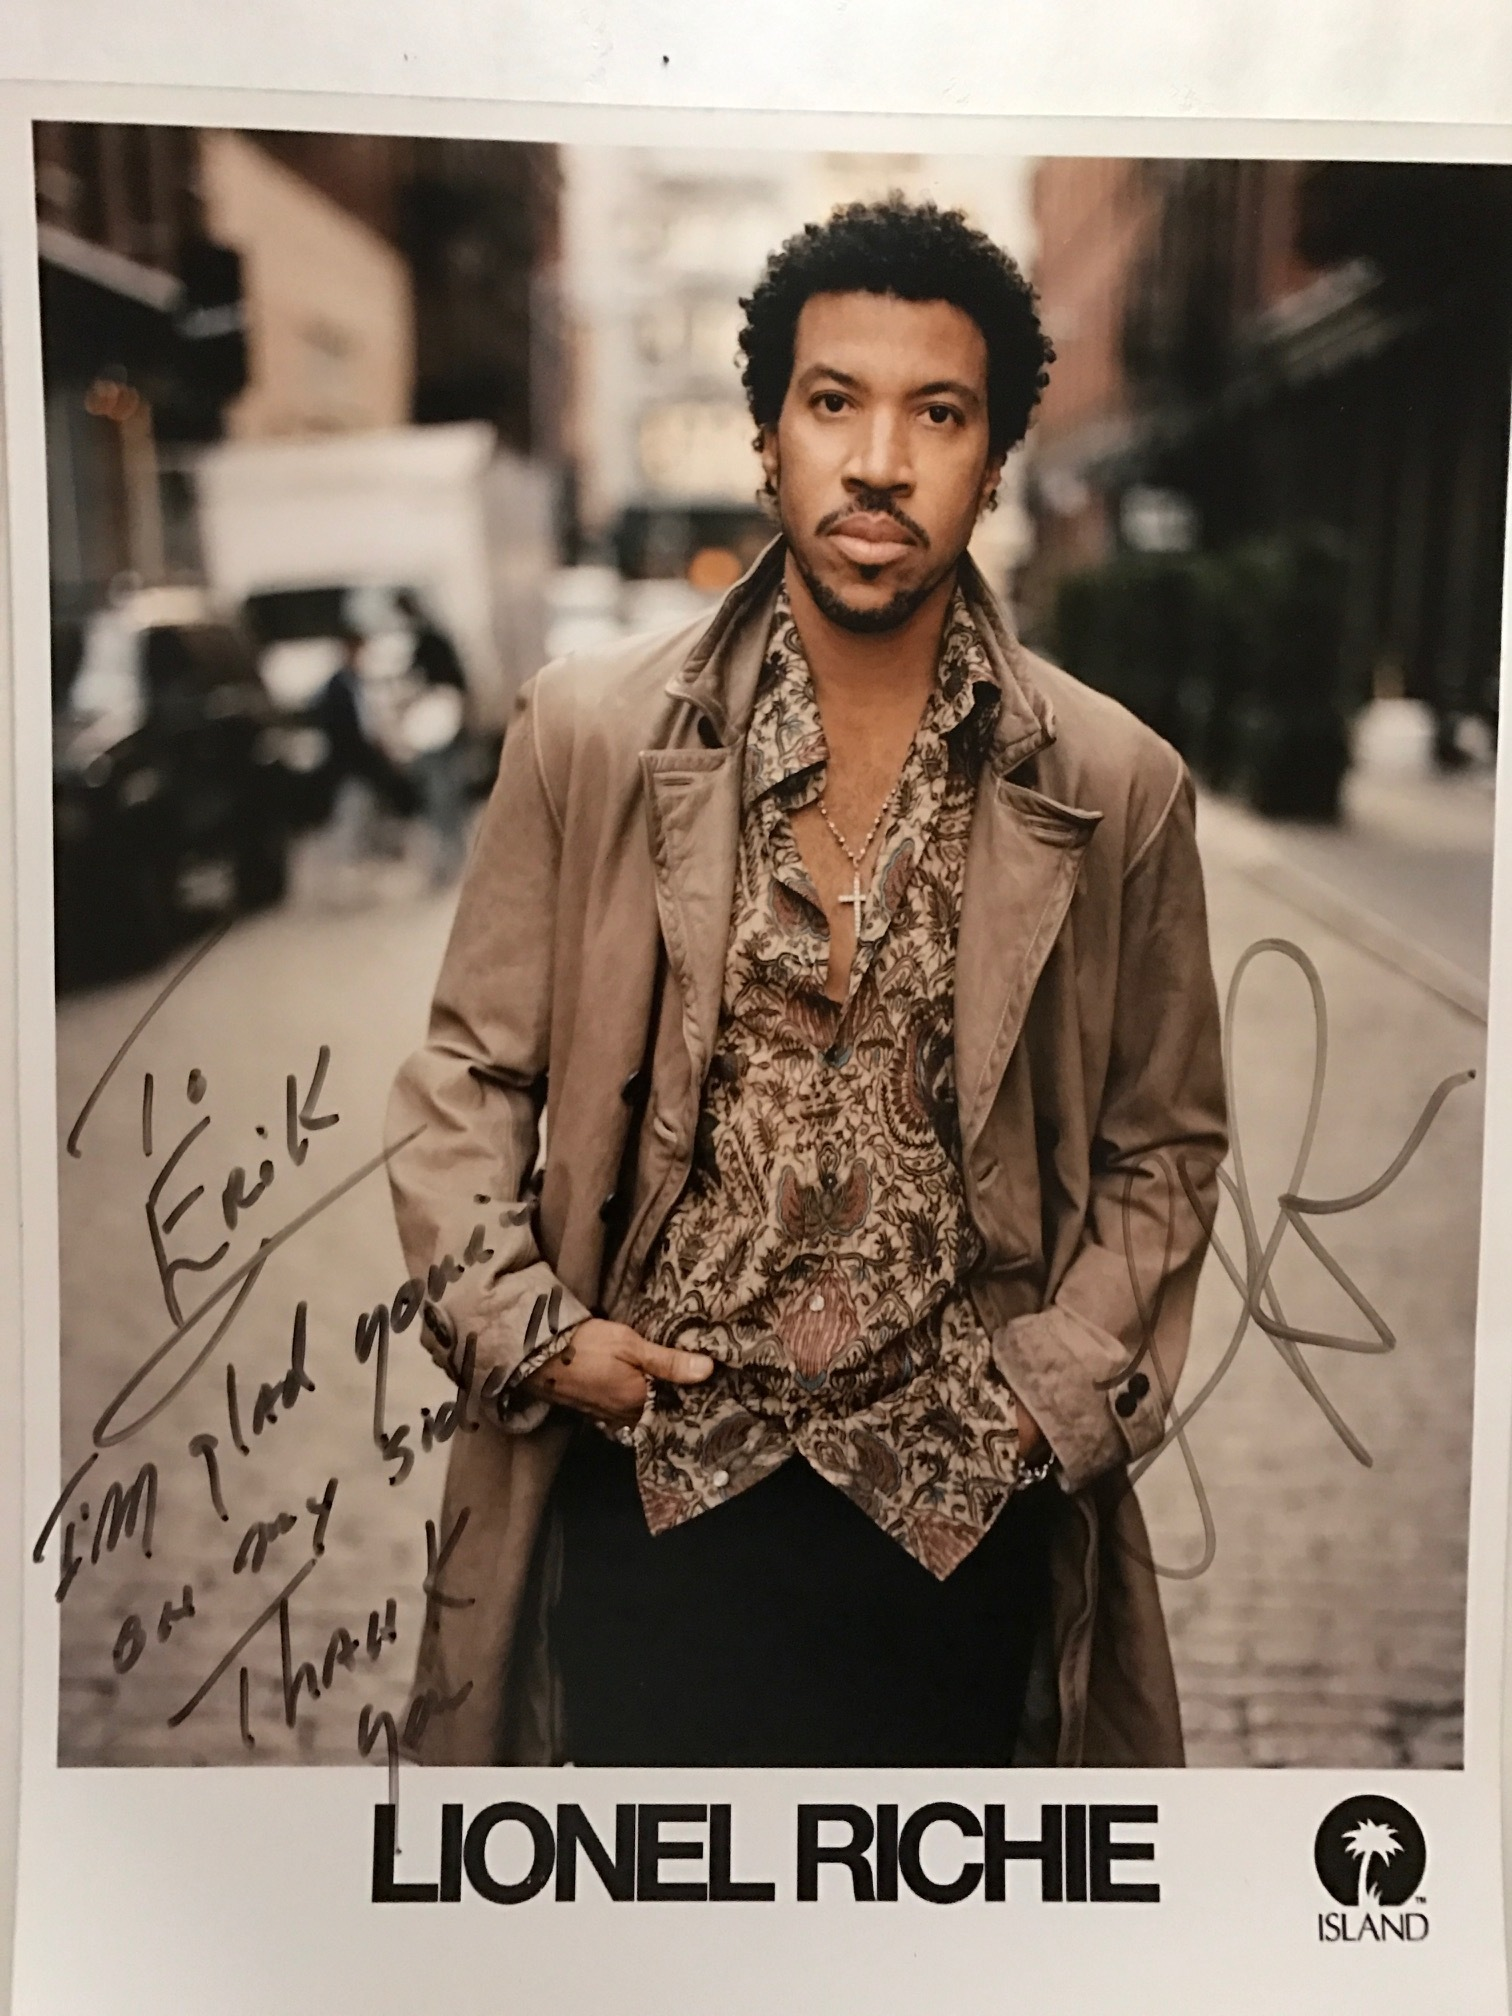 Lionel Richie photo signed.JPG